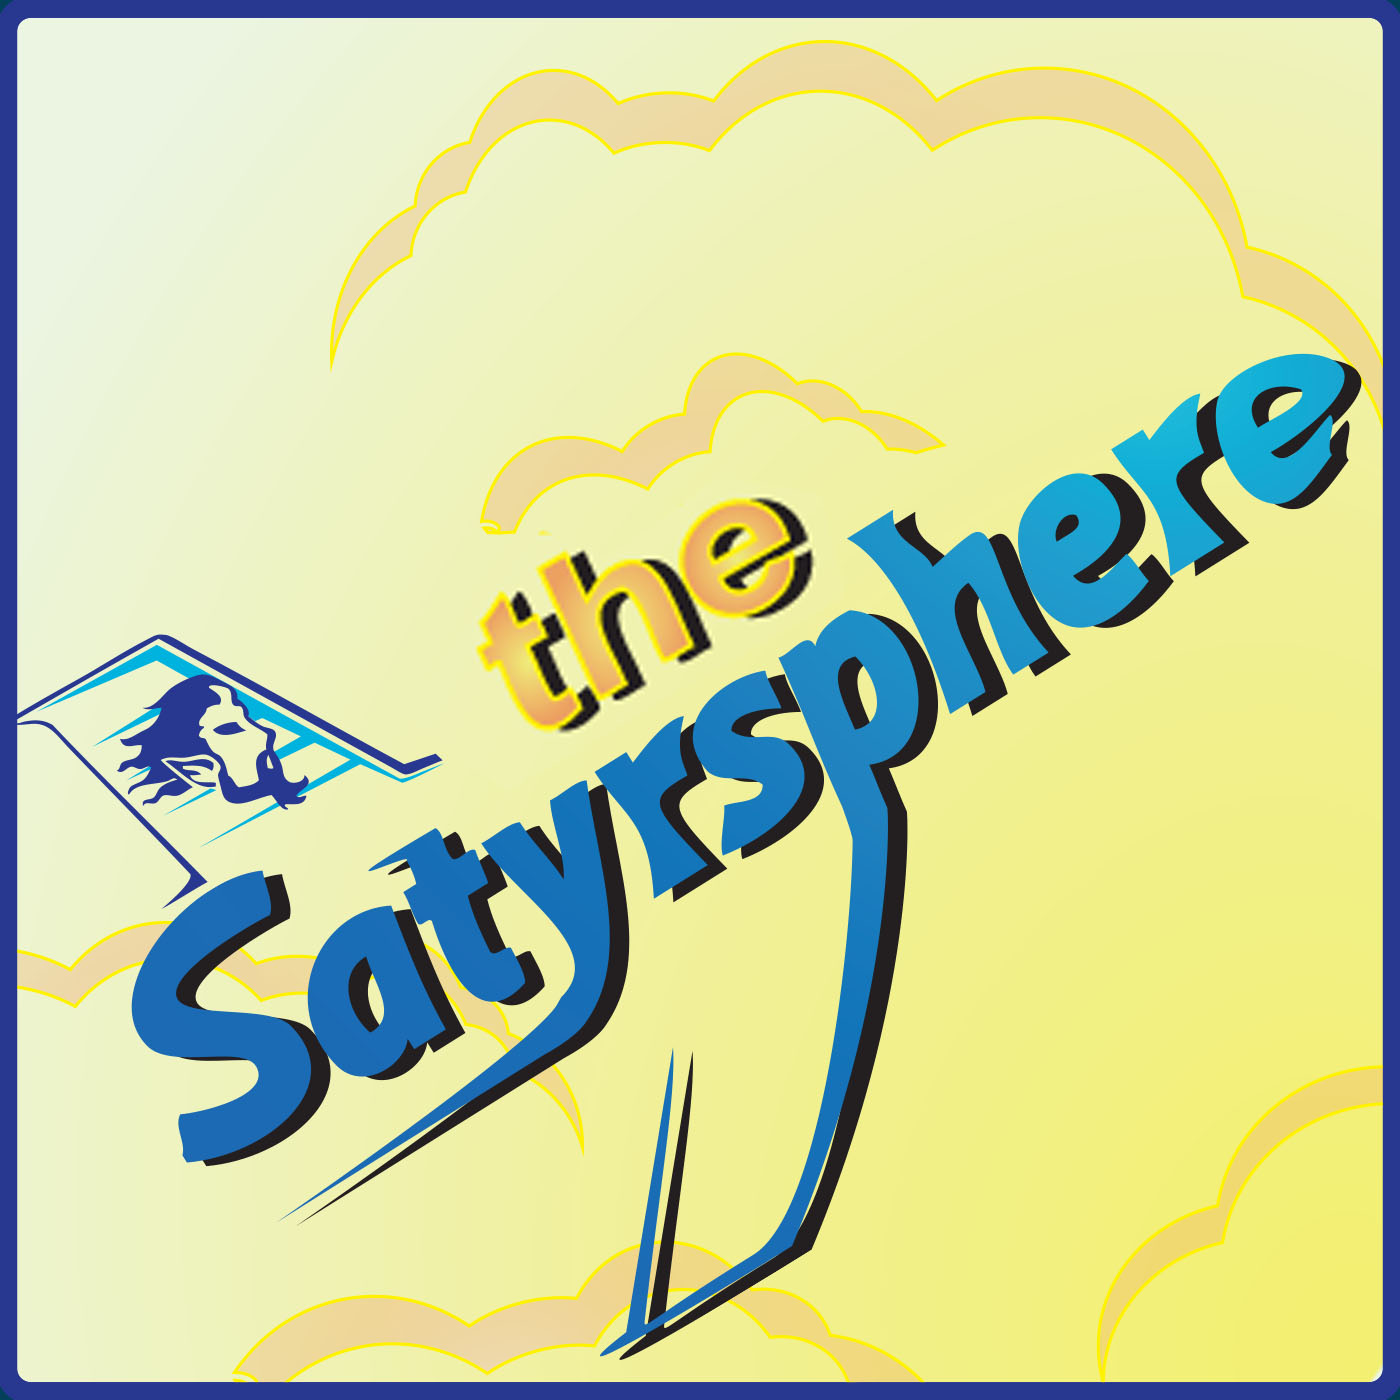 #220 - Satyrsphere Book Club Extravaganza